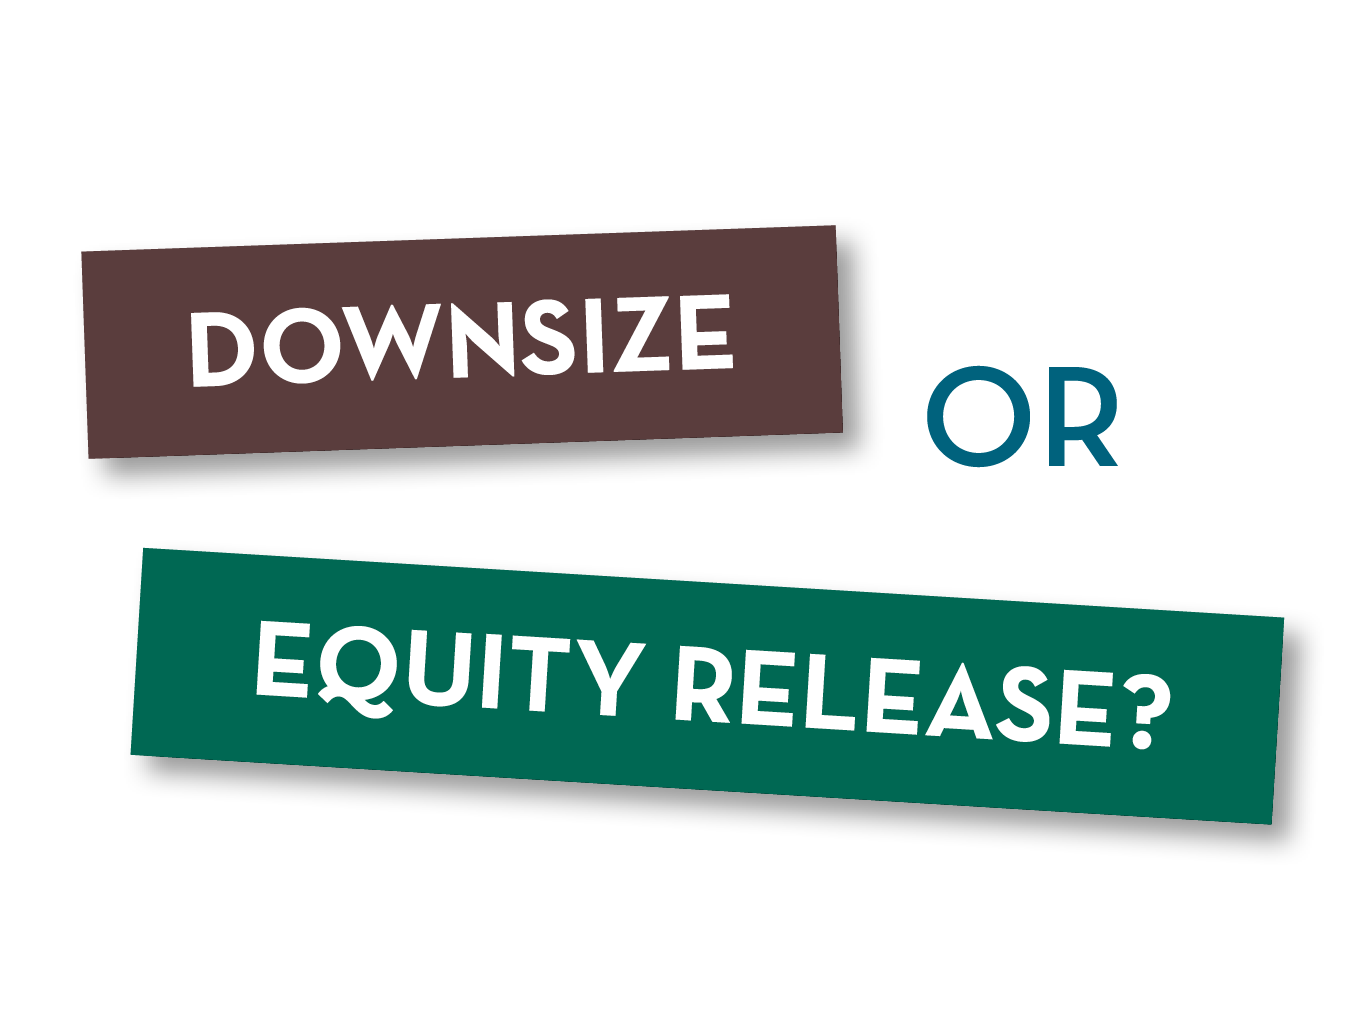 Downsizing or Equity Release